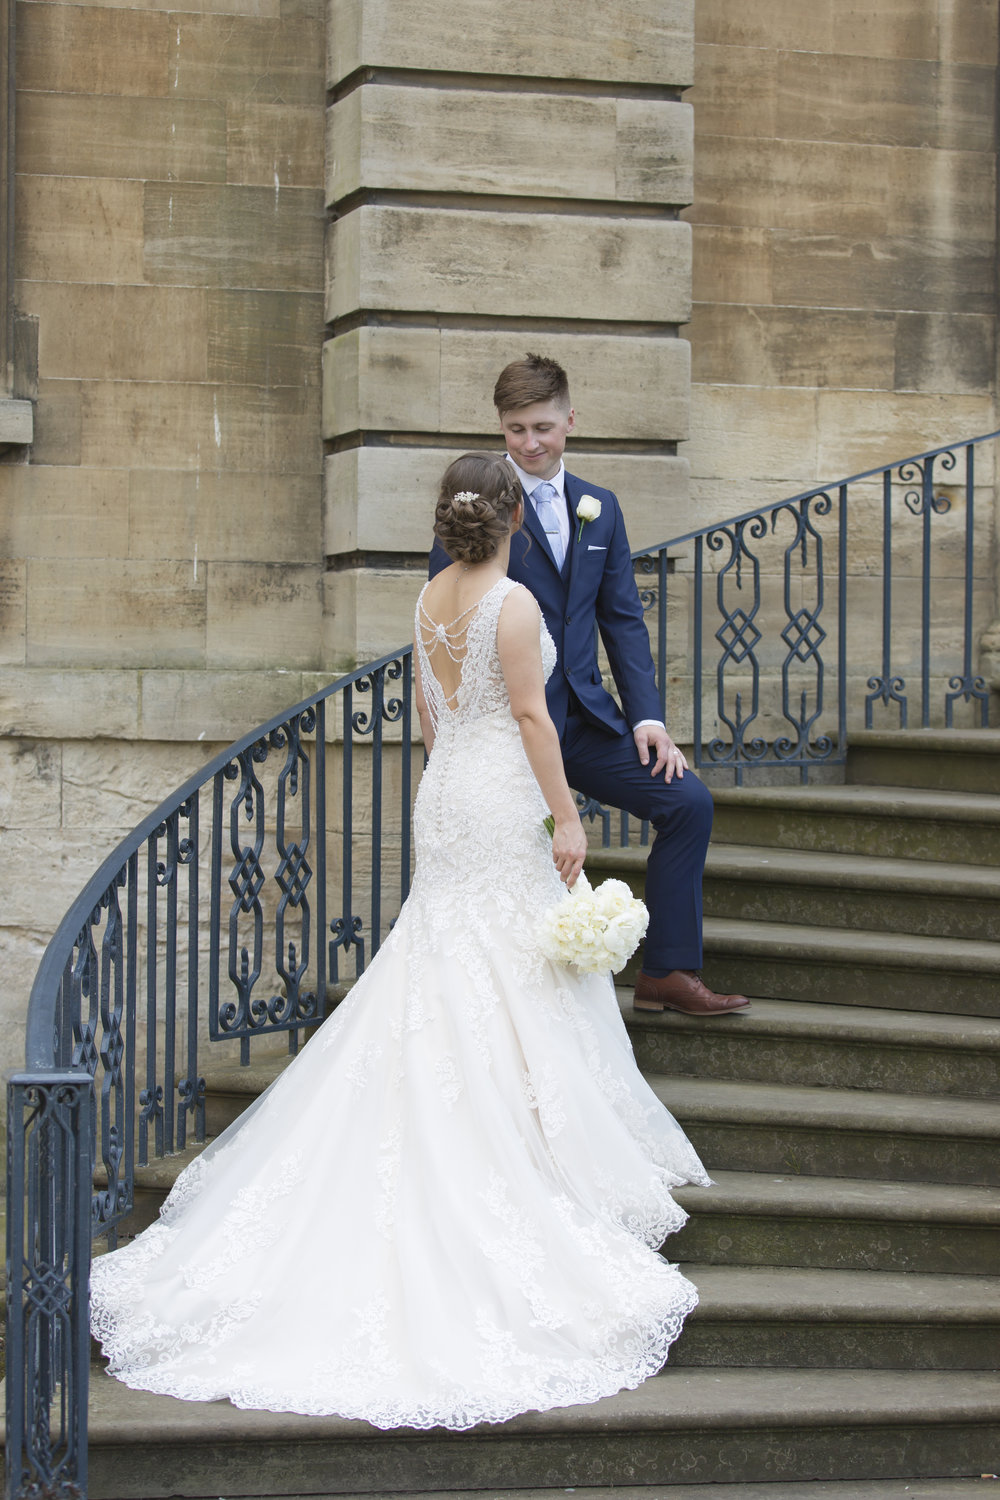 larafrostphotography_cusworthhall_doncaster_southyorkshire_karlandlucy_weddingphotography_photographer_yorkshire_bride_groom-47.jpg